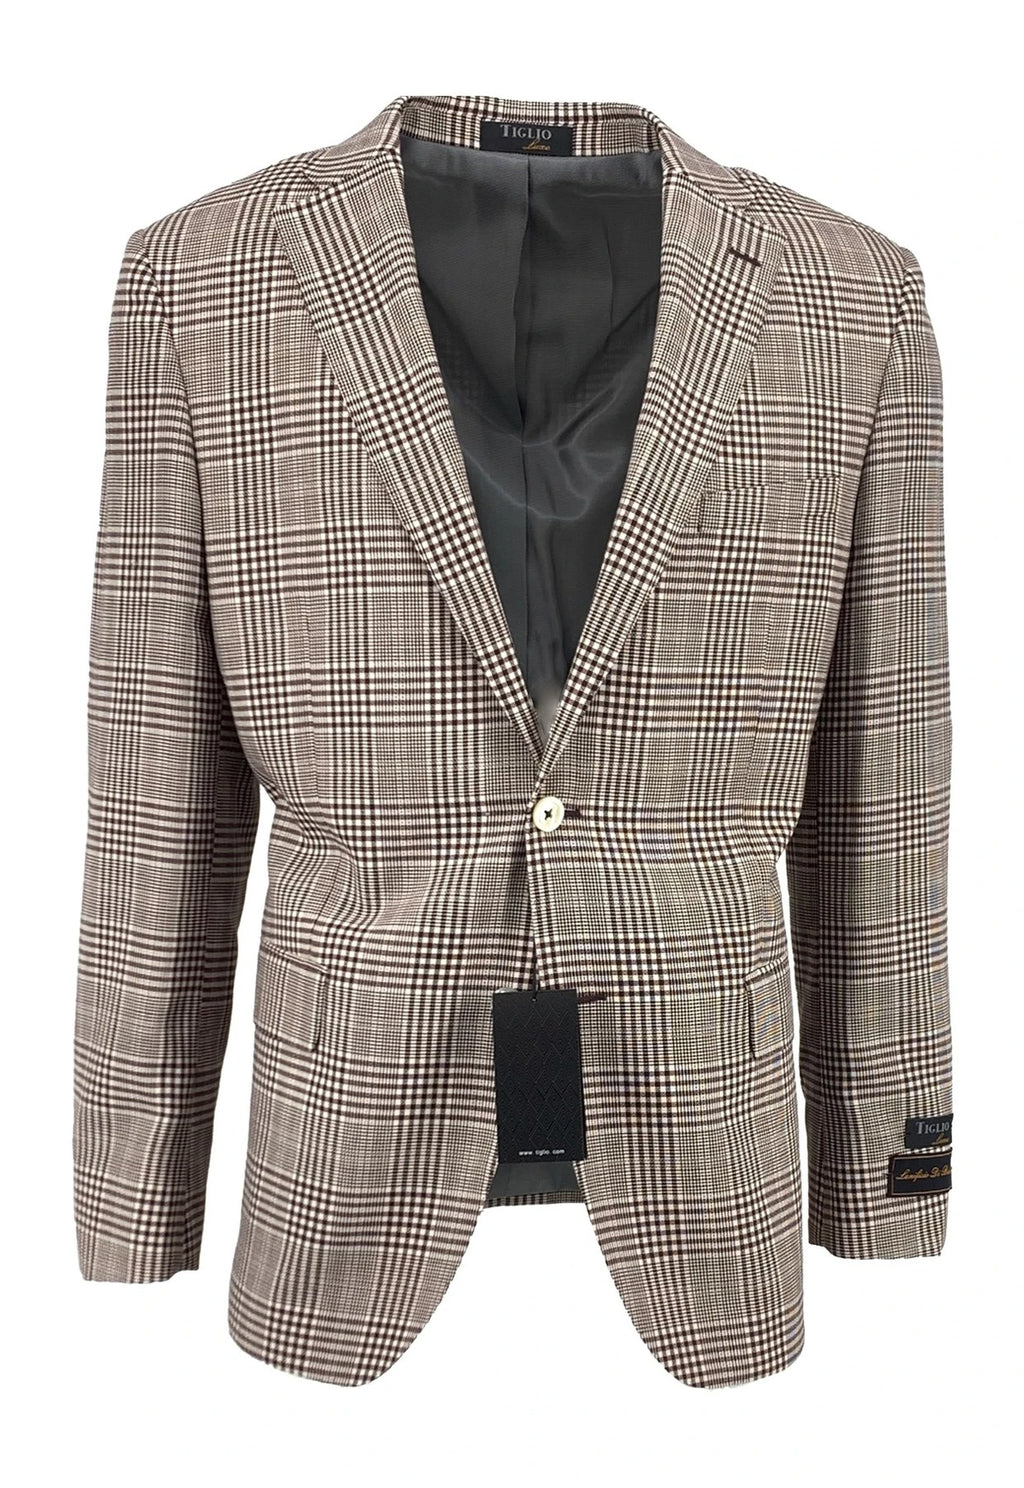 Dolcetto Cream with Burgundy Windowpane Modern Fit, Pure Wool Jacket by Tiglio Luxe TLS-59/2